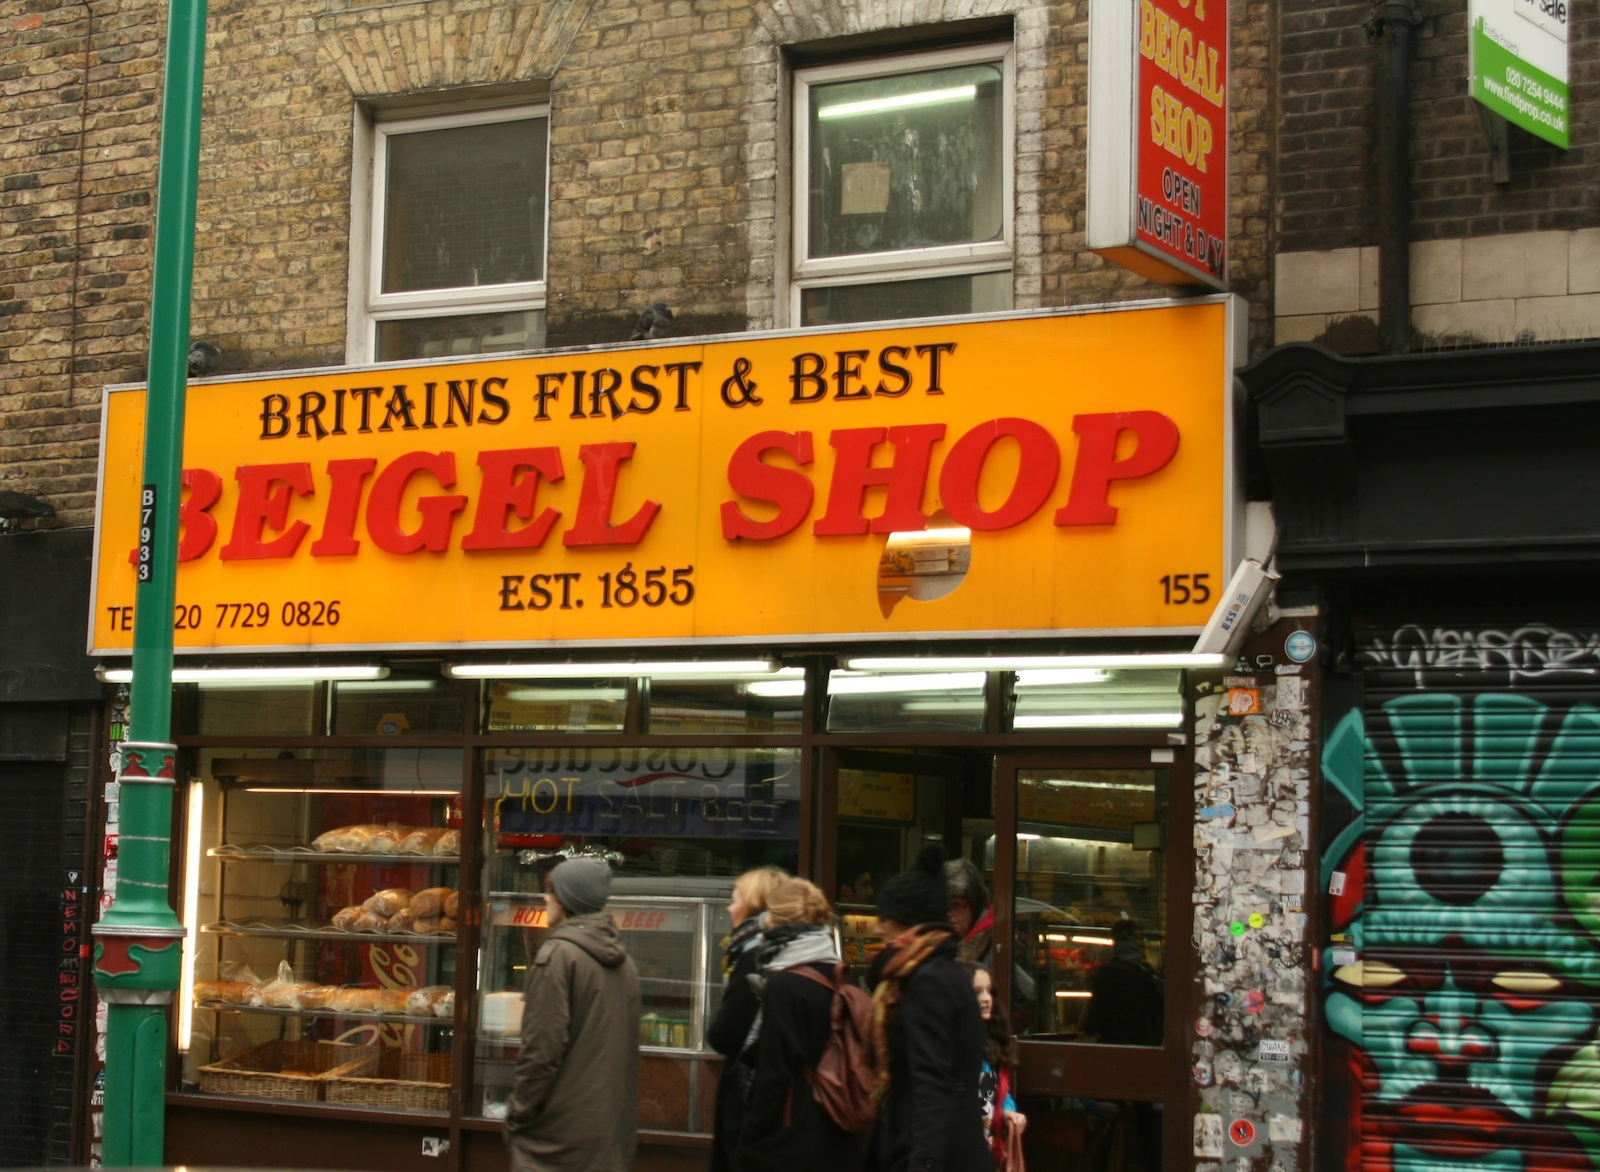 Bagel-Shop-Brick-Lane.jpg